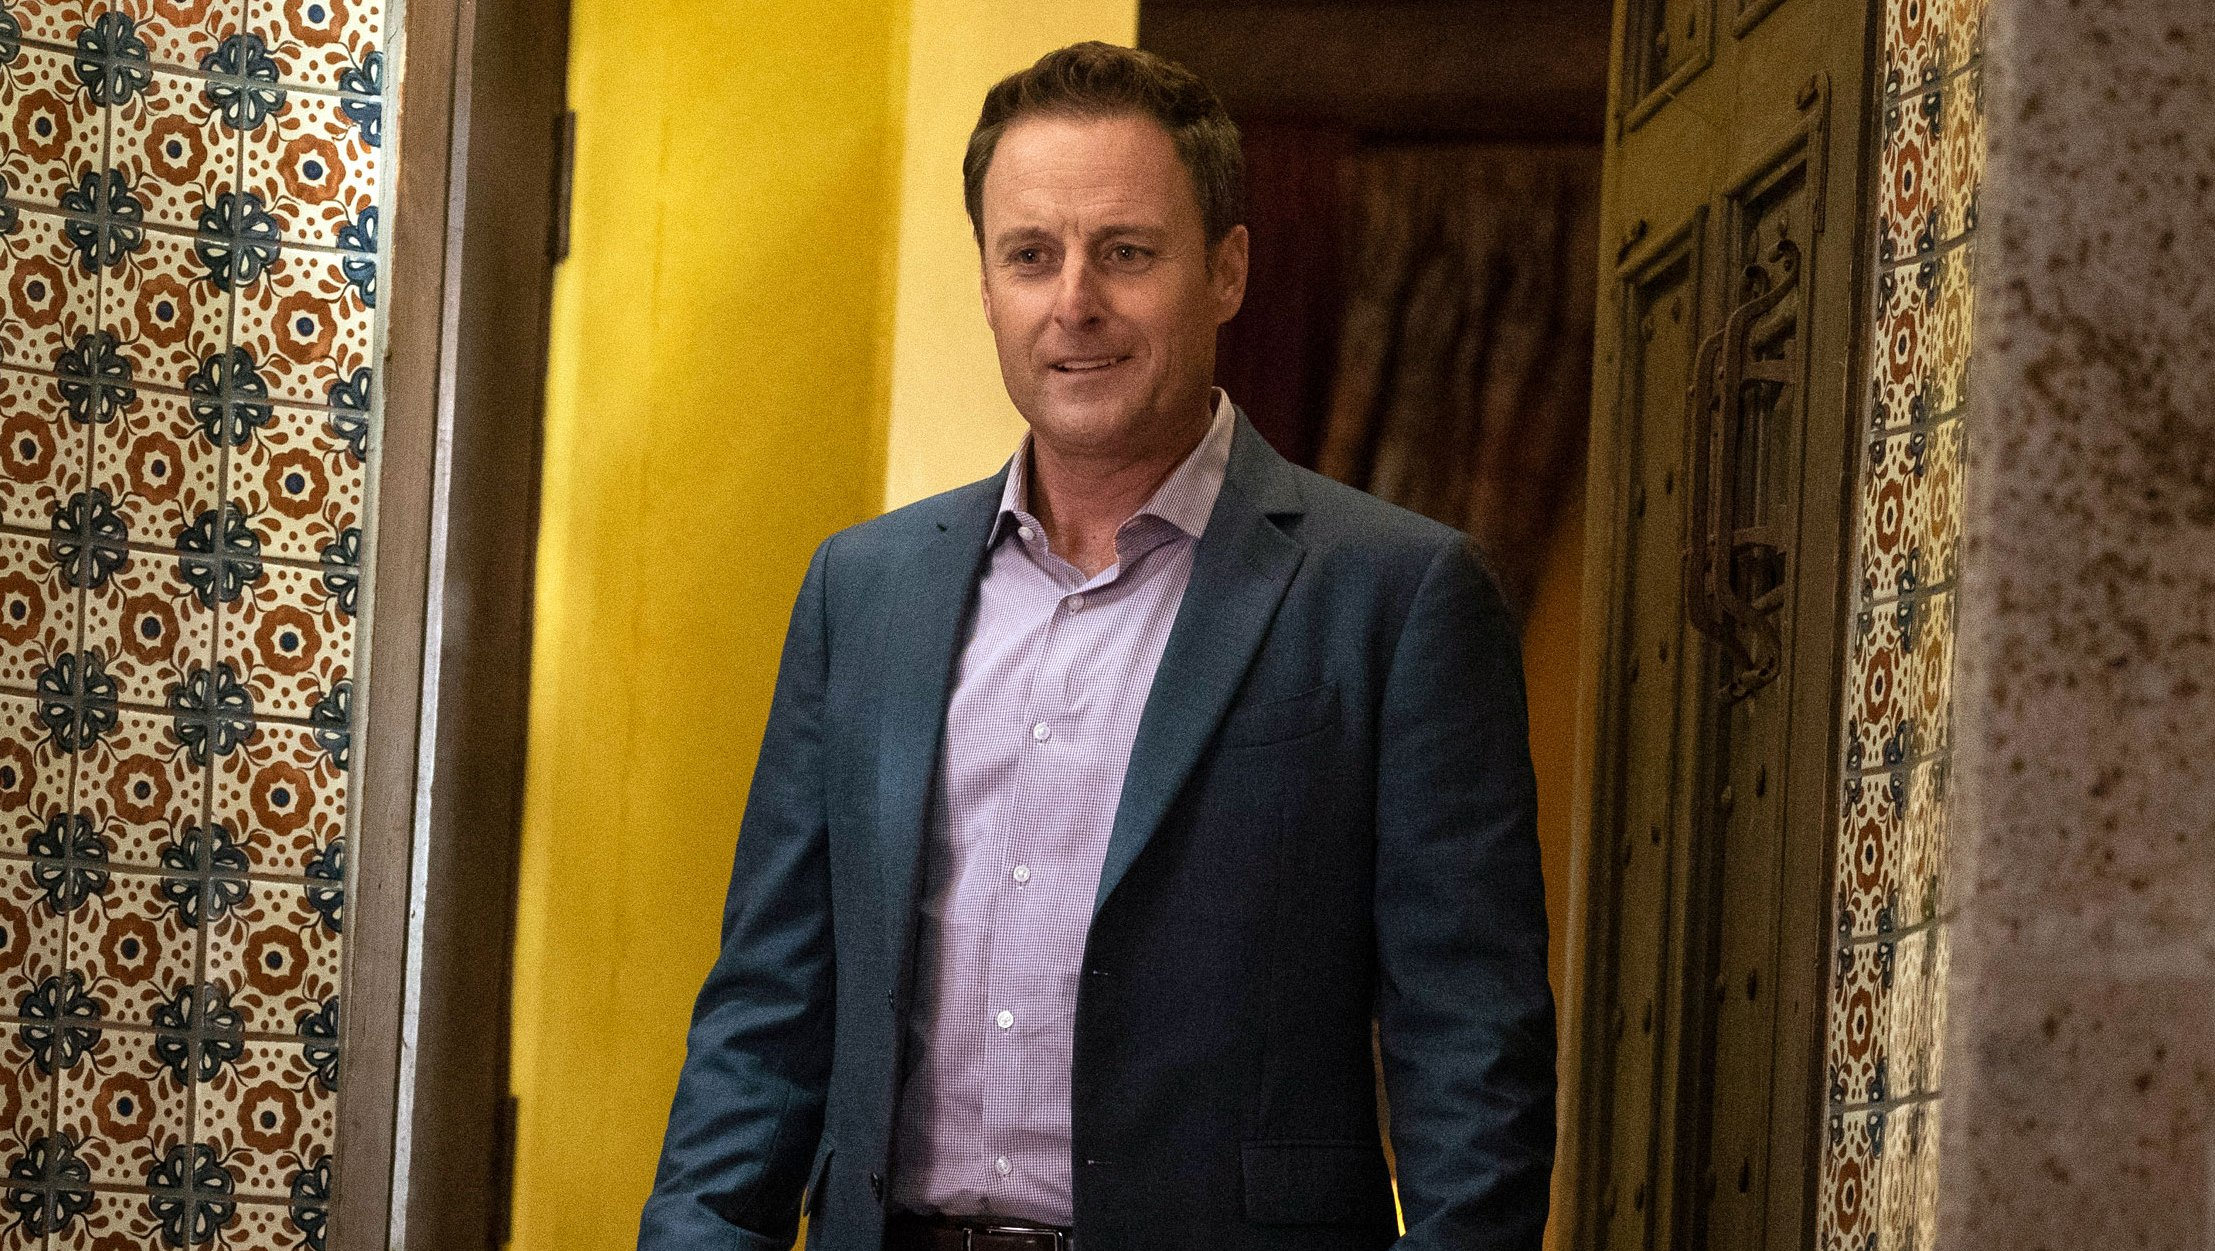 Chris Harrison Returns 'Home' to the 'Bachelor' Mansion Nearly 5 Months After Malibu Wildfires: 'More Grateful Than Ever'